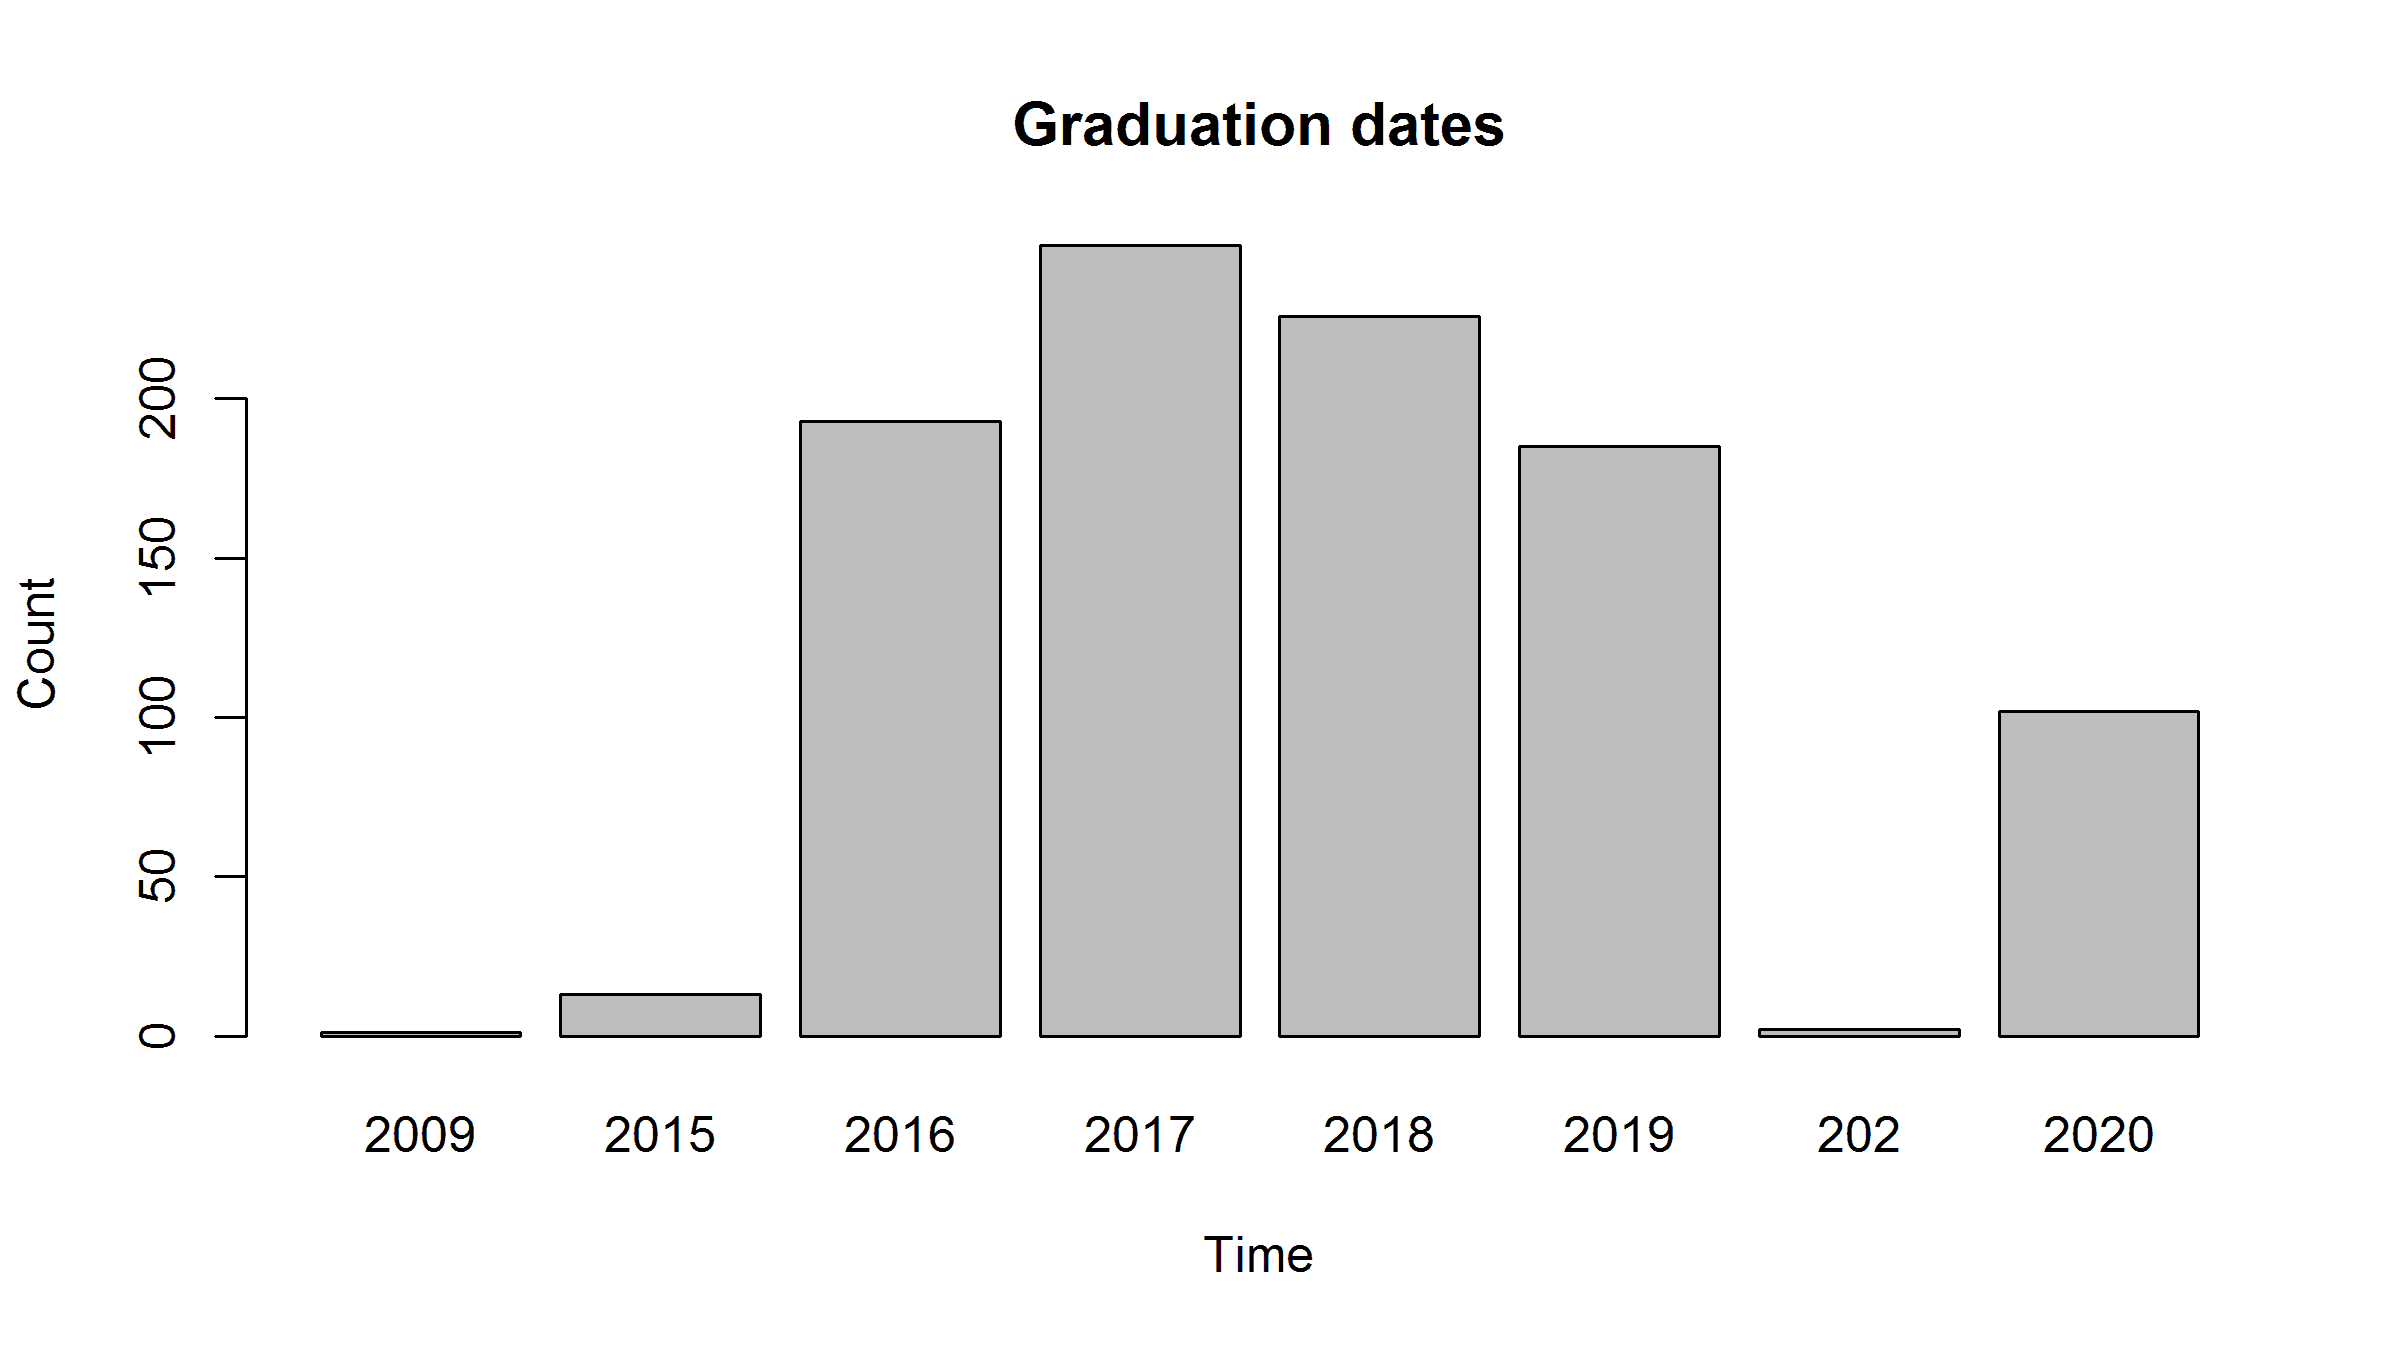 Breakdown of graduation dates at McHacks